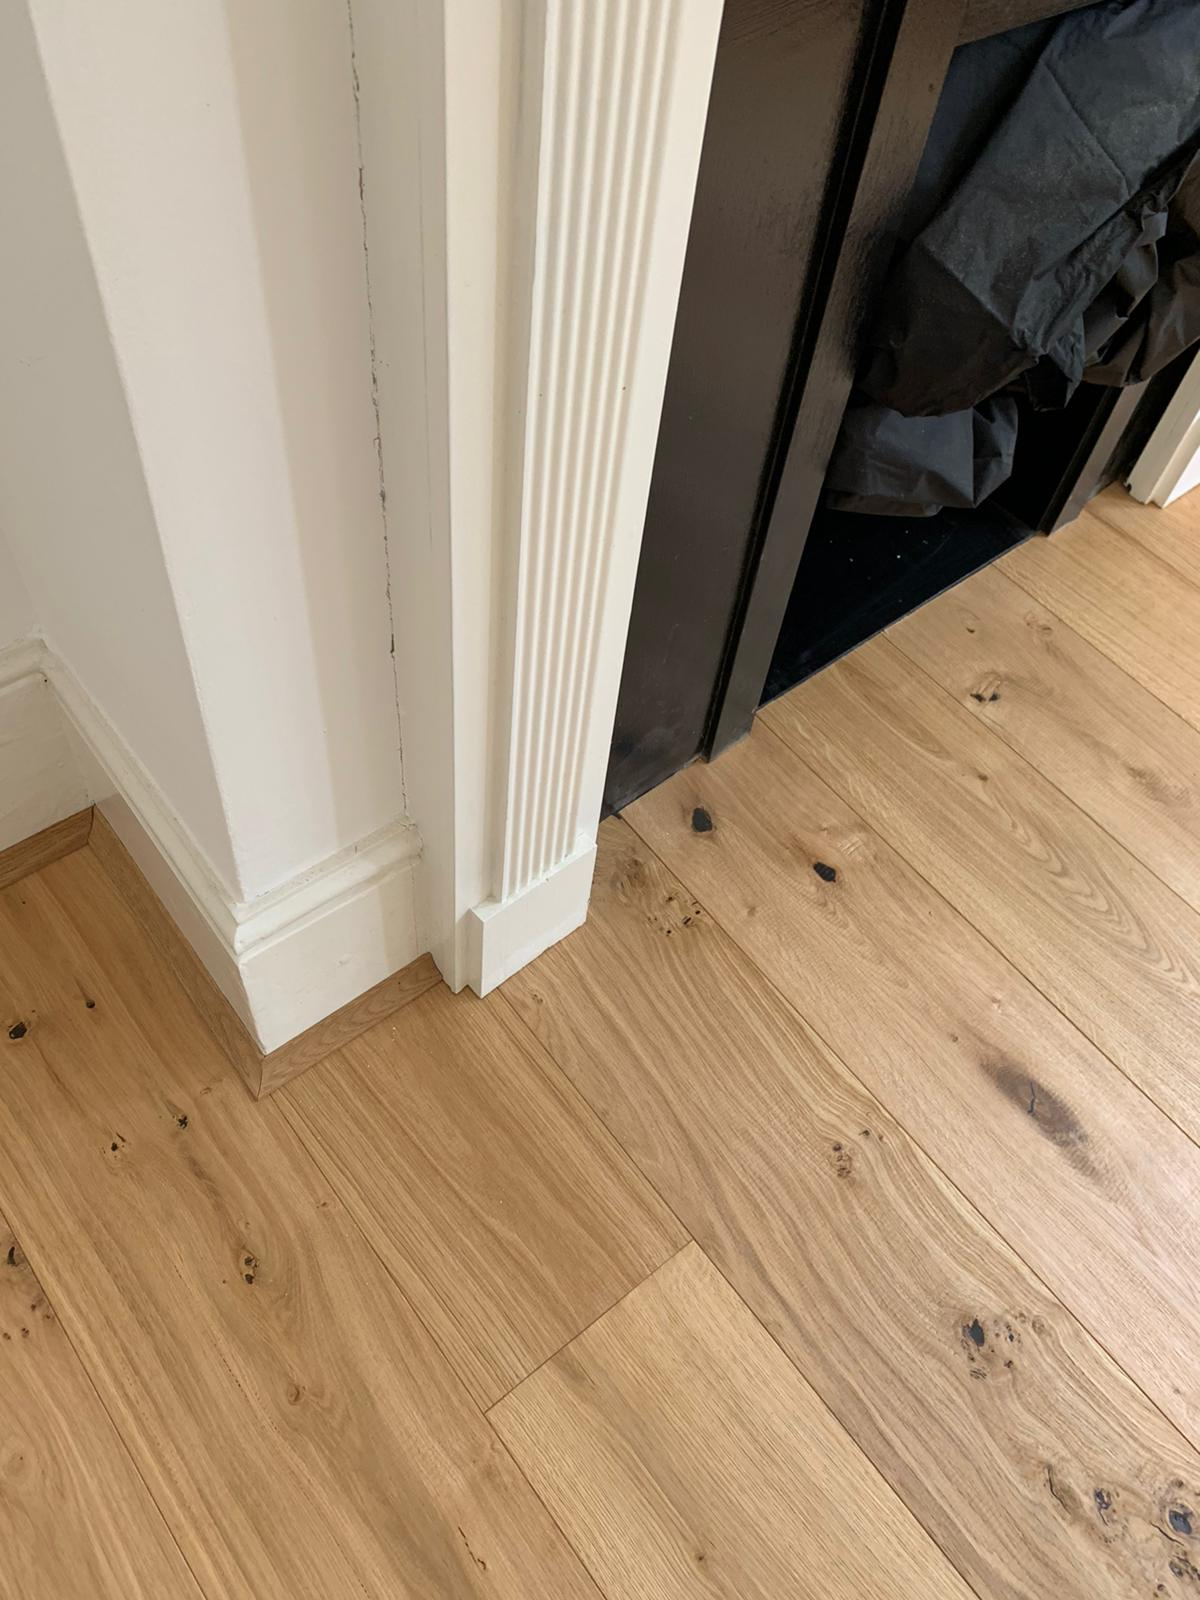 Xylo R100 Wood Flooring in Southwark 2